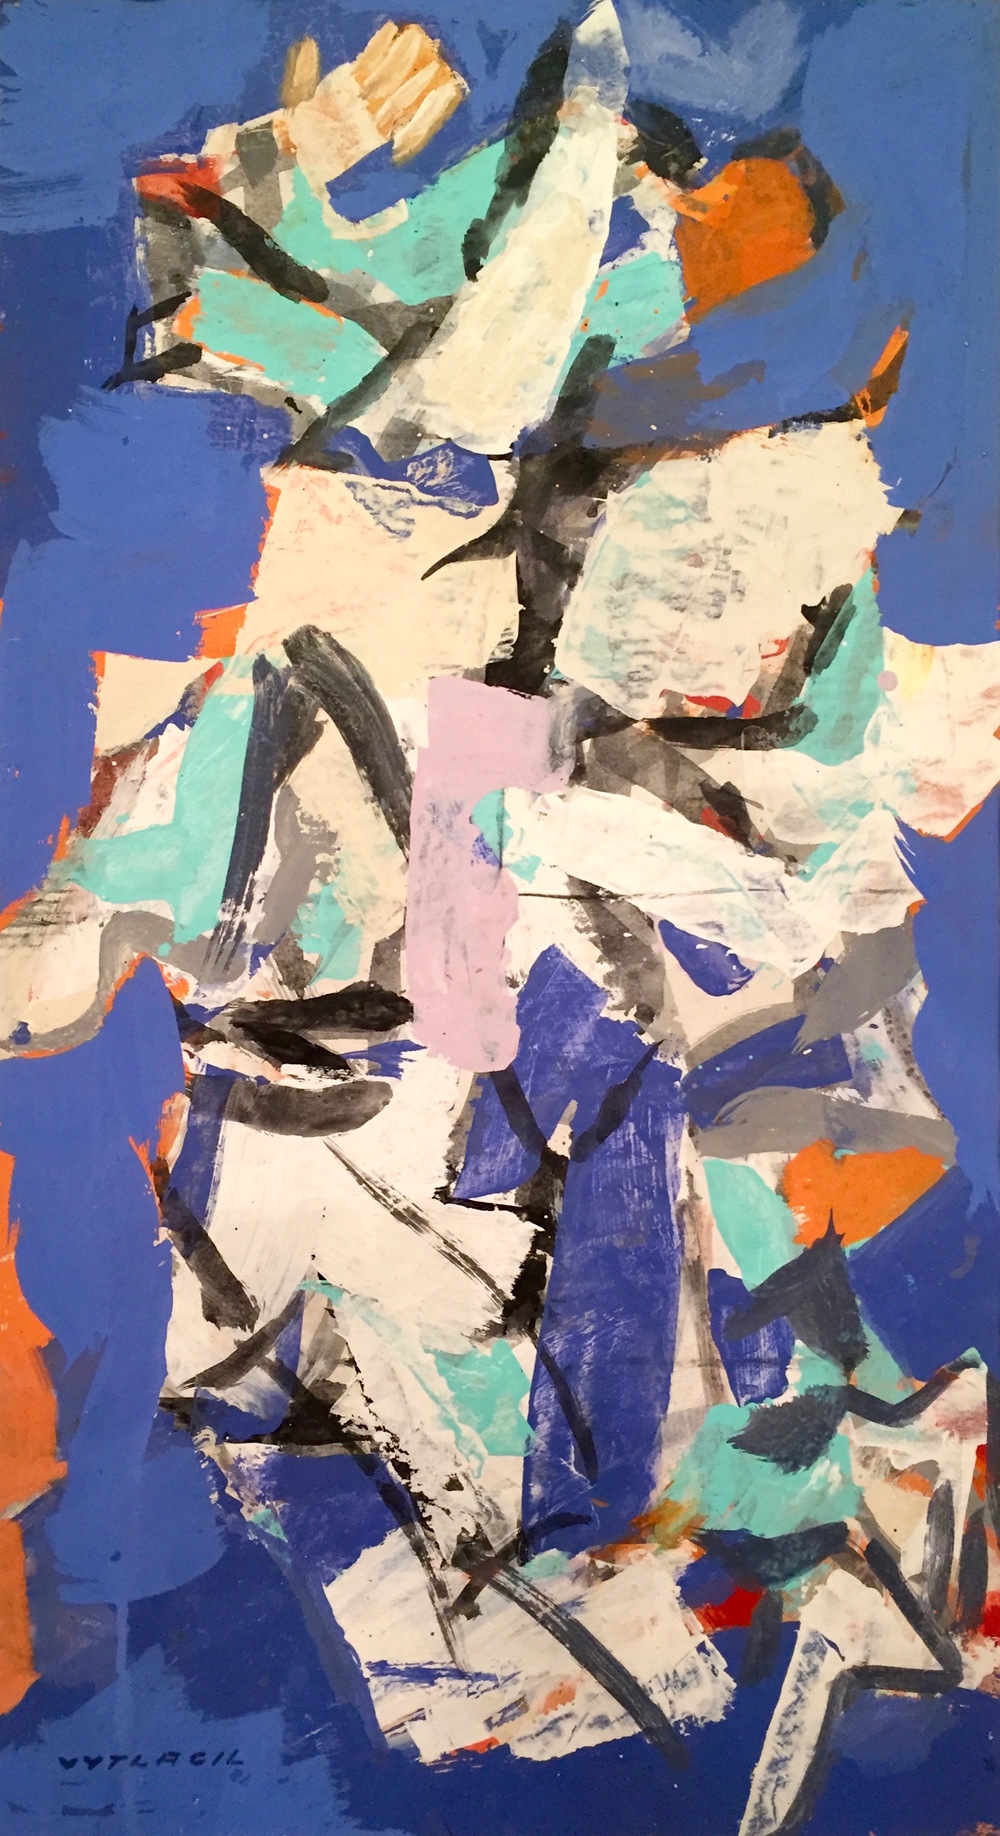 Untitled, ca. 1970–1979   Medium: Paintings, Acrylic on paper  Size: 40 x 22 in. (101.6 x 55.9 cm.)